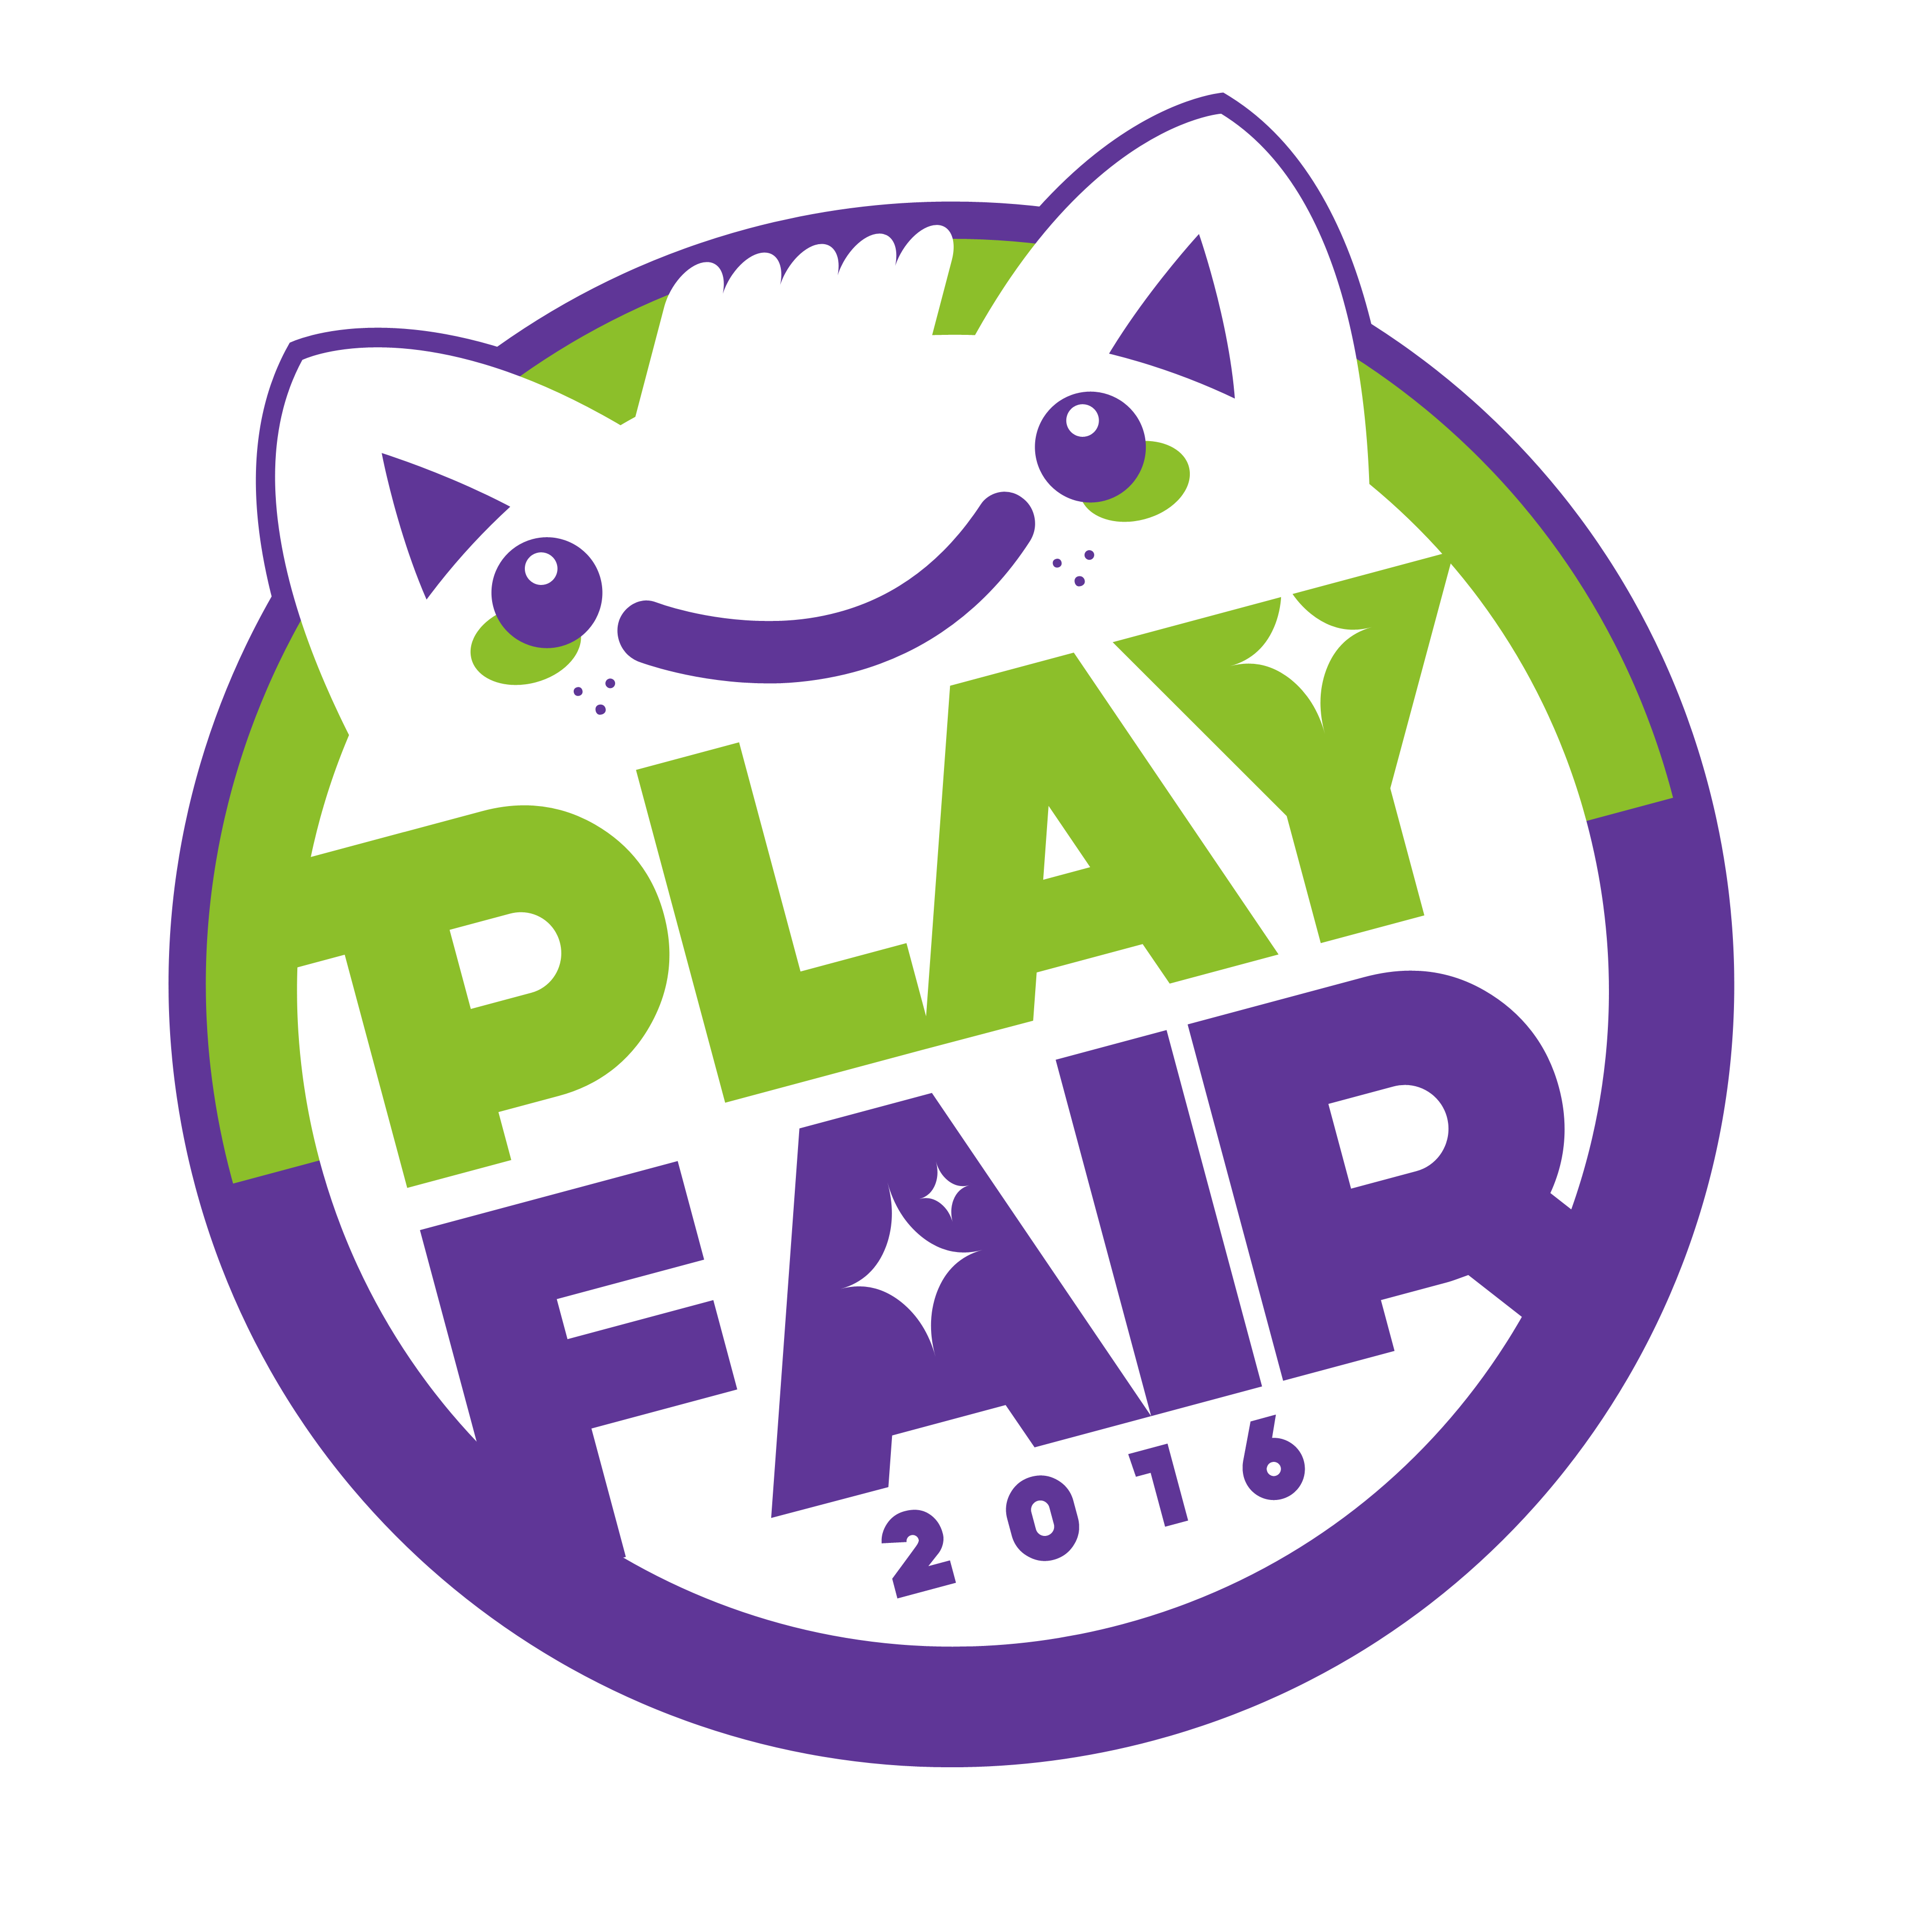 We are Going to Playfair 2016!